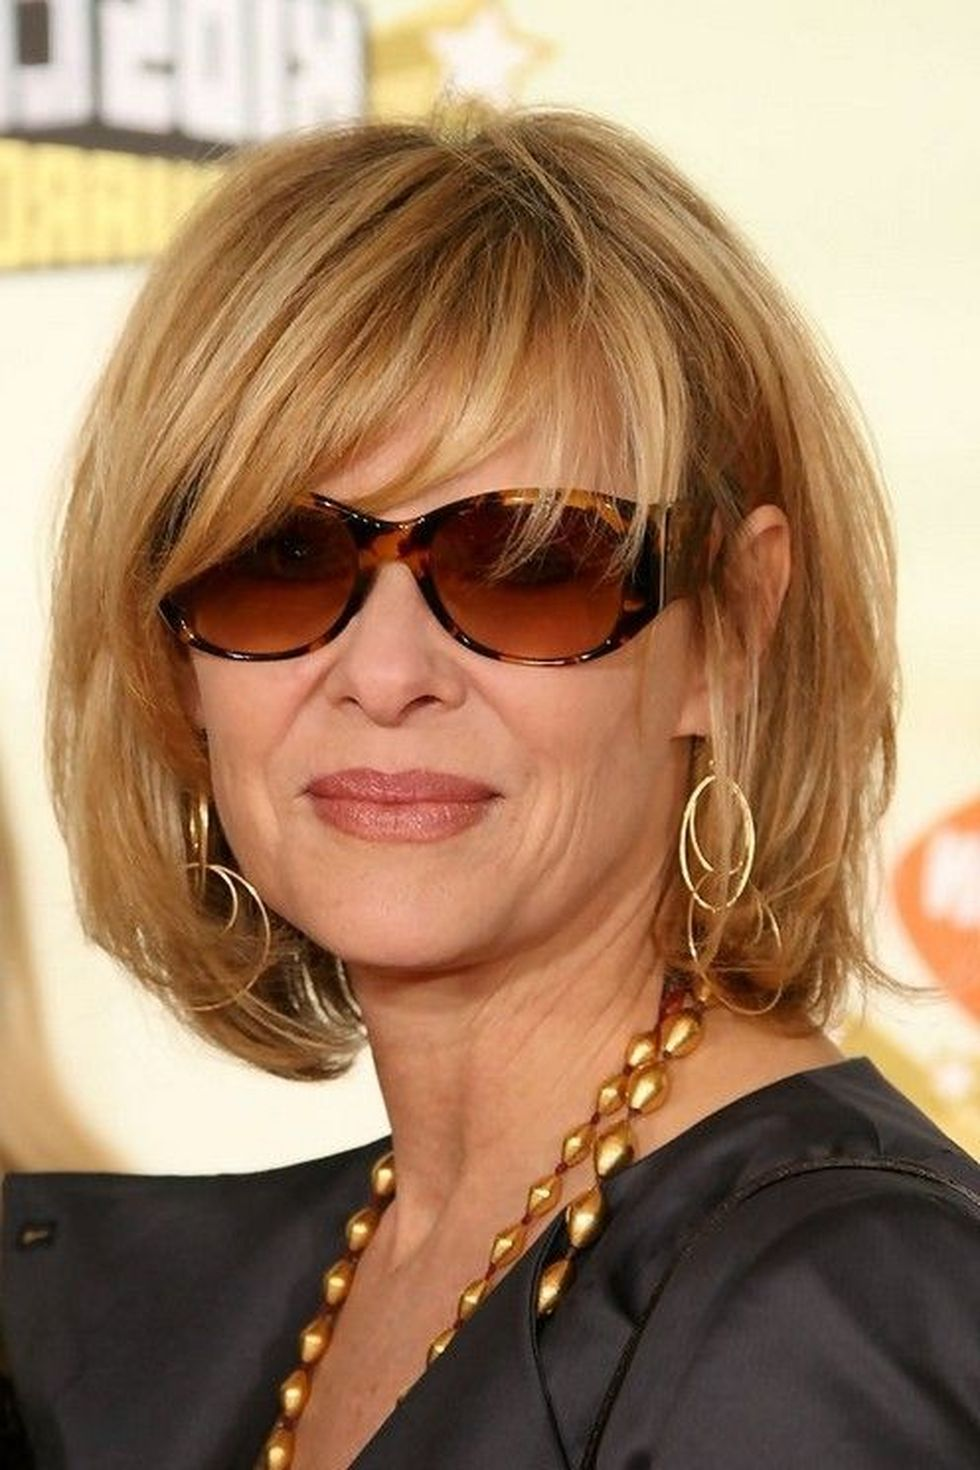 For Women Over 50 Hairstyle Defines Attitude Personality And Is Among The Simplest Strategies To In 2020 Messy Haircut Medium Length Hair Styles Medium Hair Styles